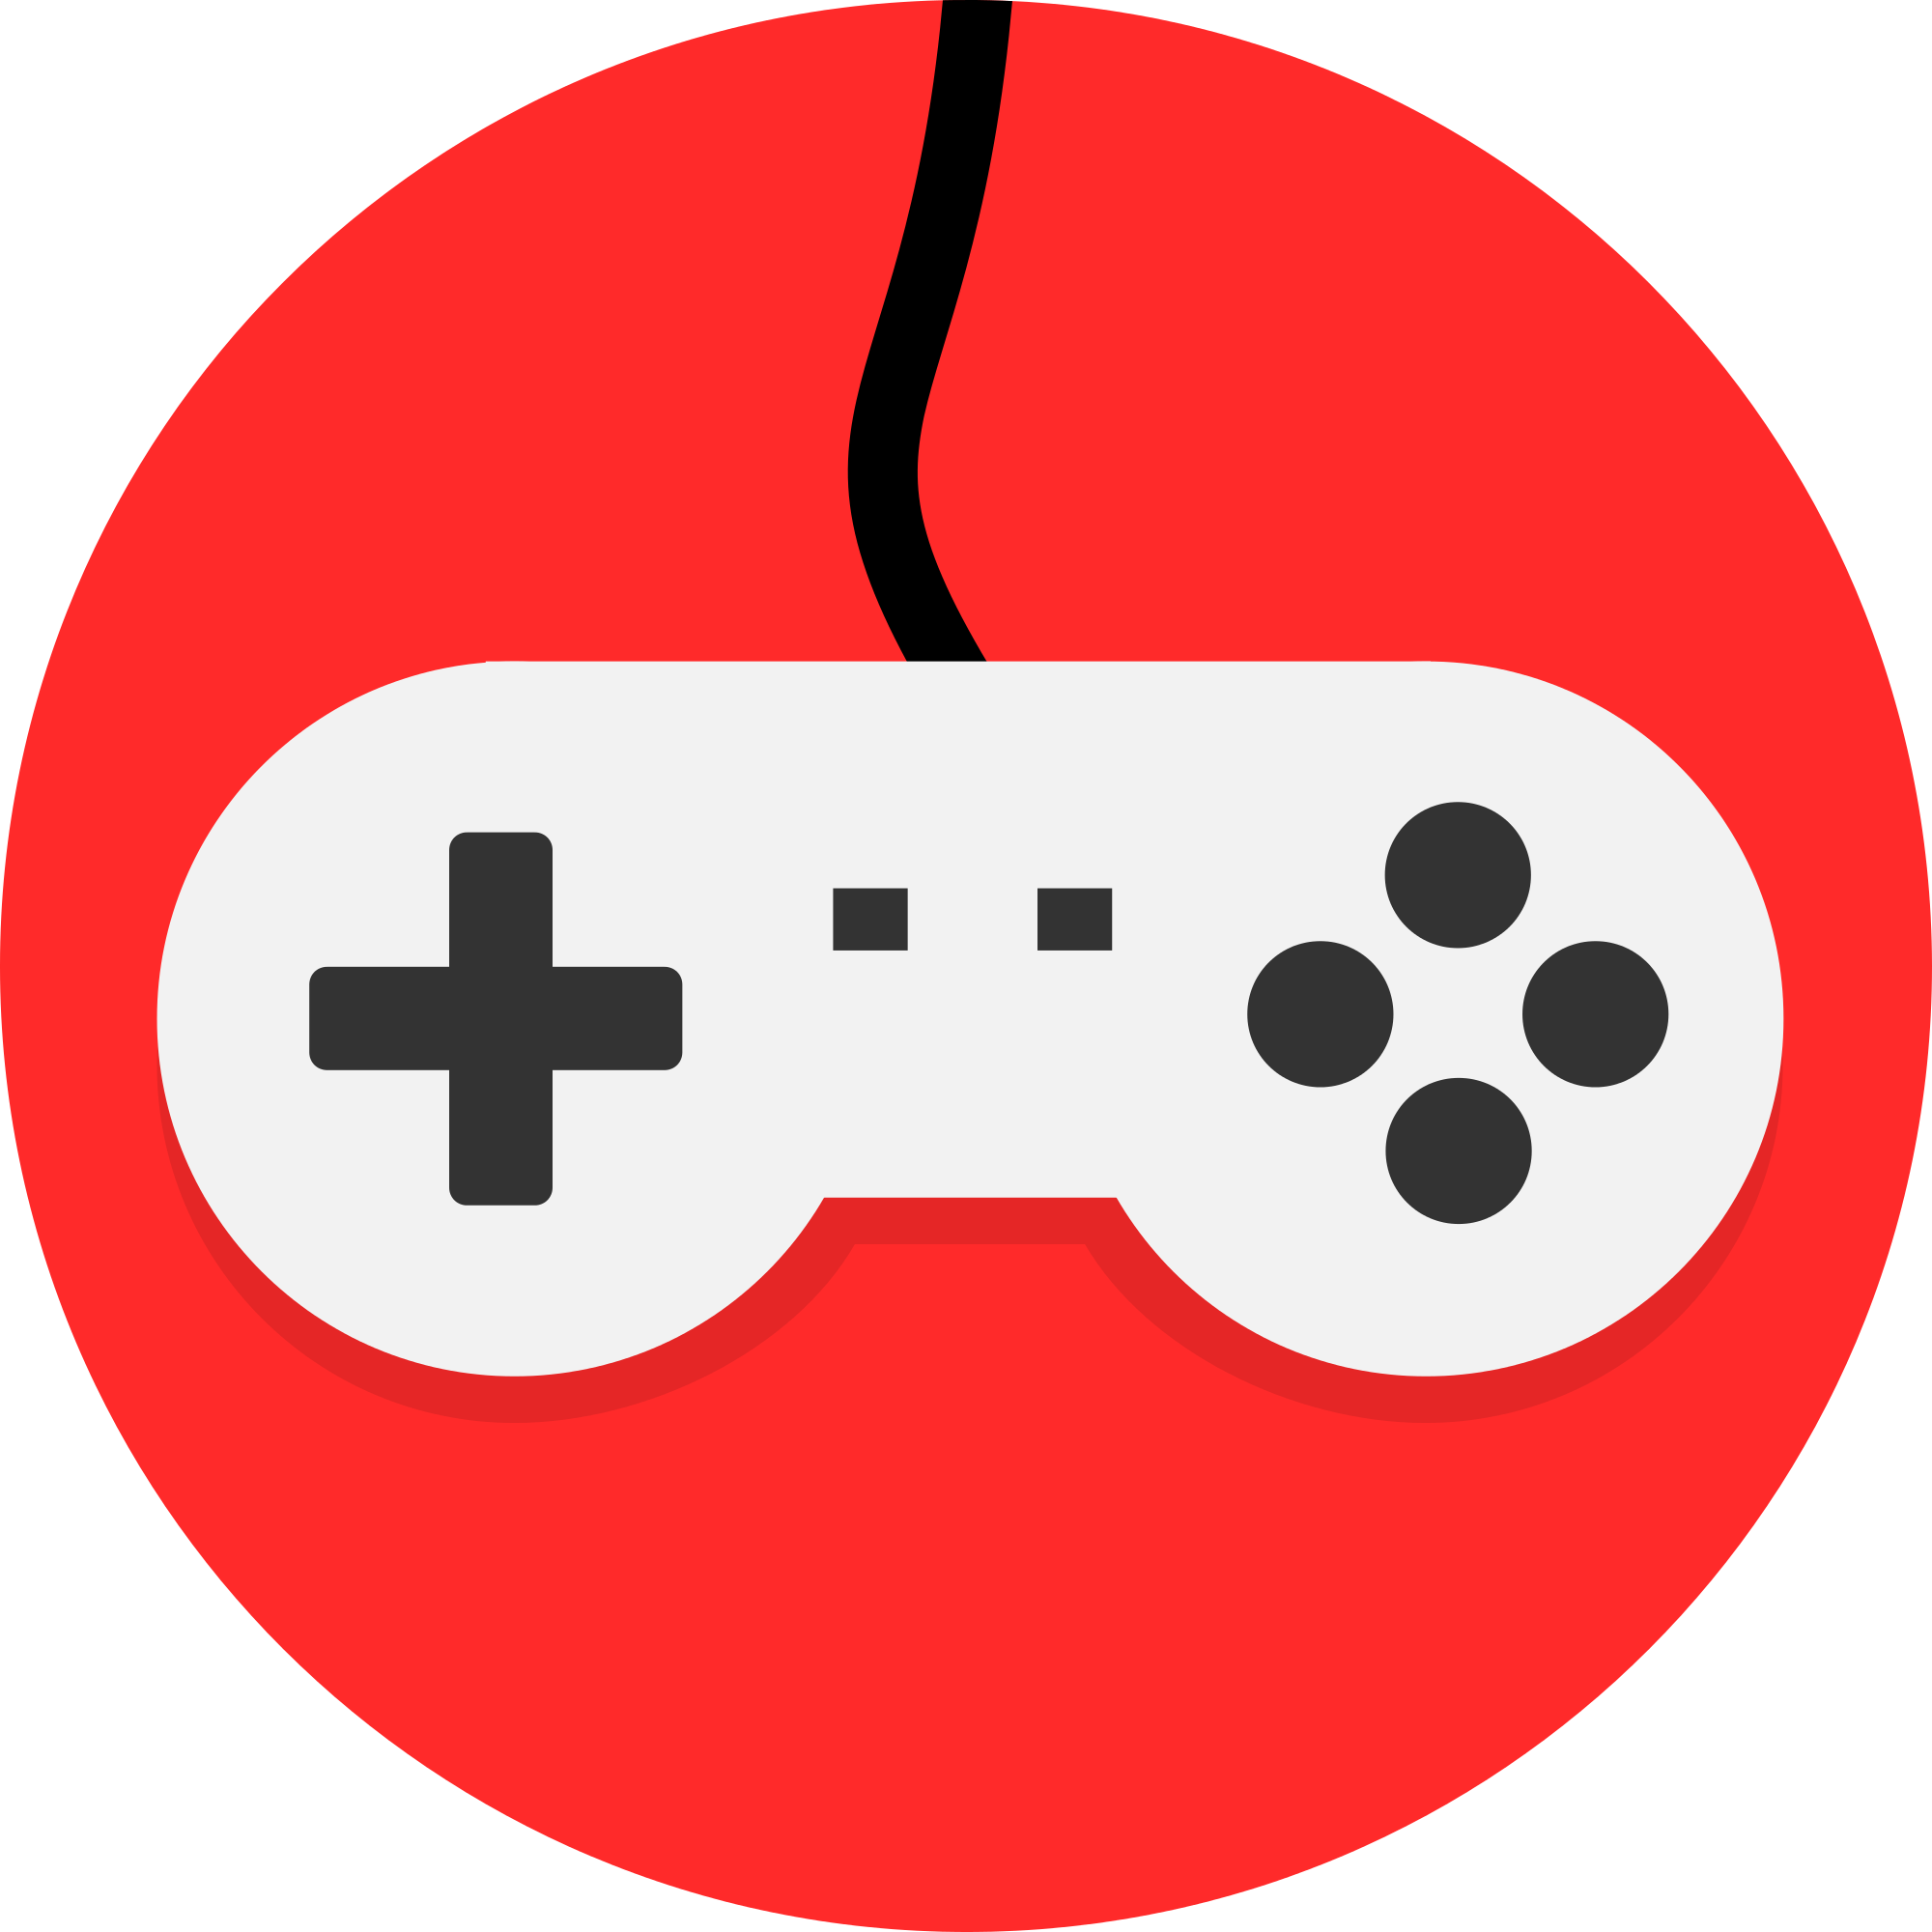 Png video games. File game controller icon